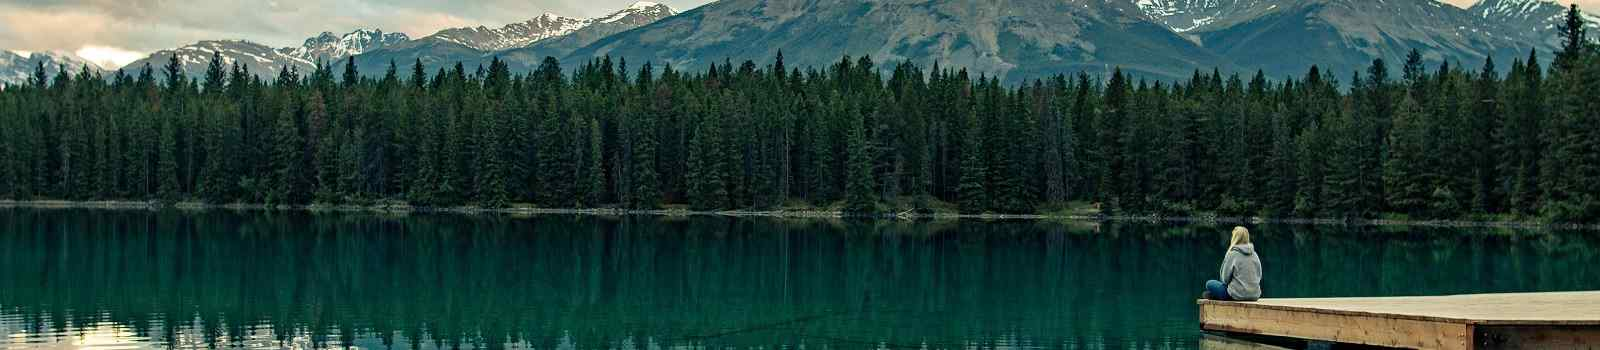 NORDWEST Enjoying the beautiful landscape by Annette Lake in Jasper National Park  Canadashutterstock 530657062